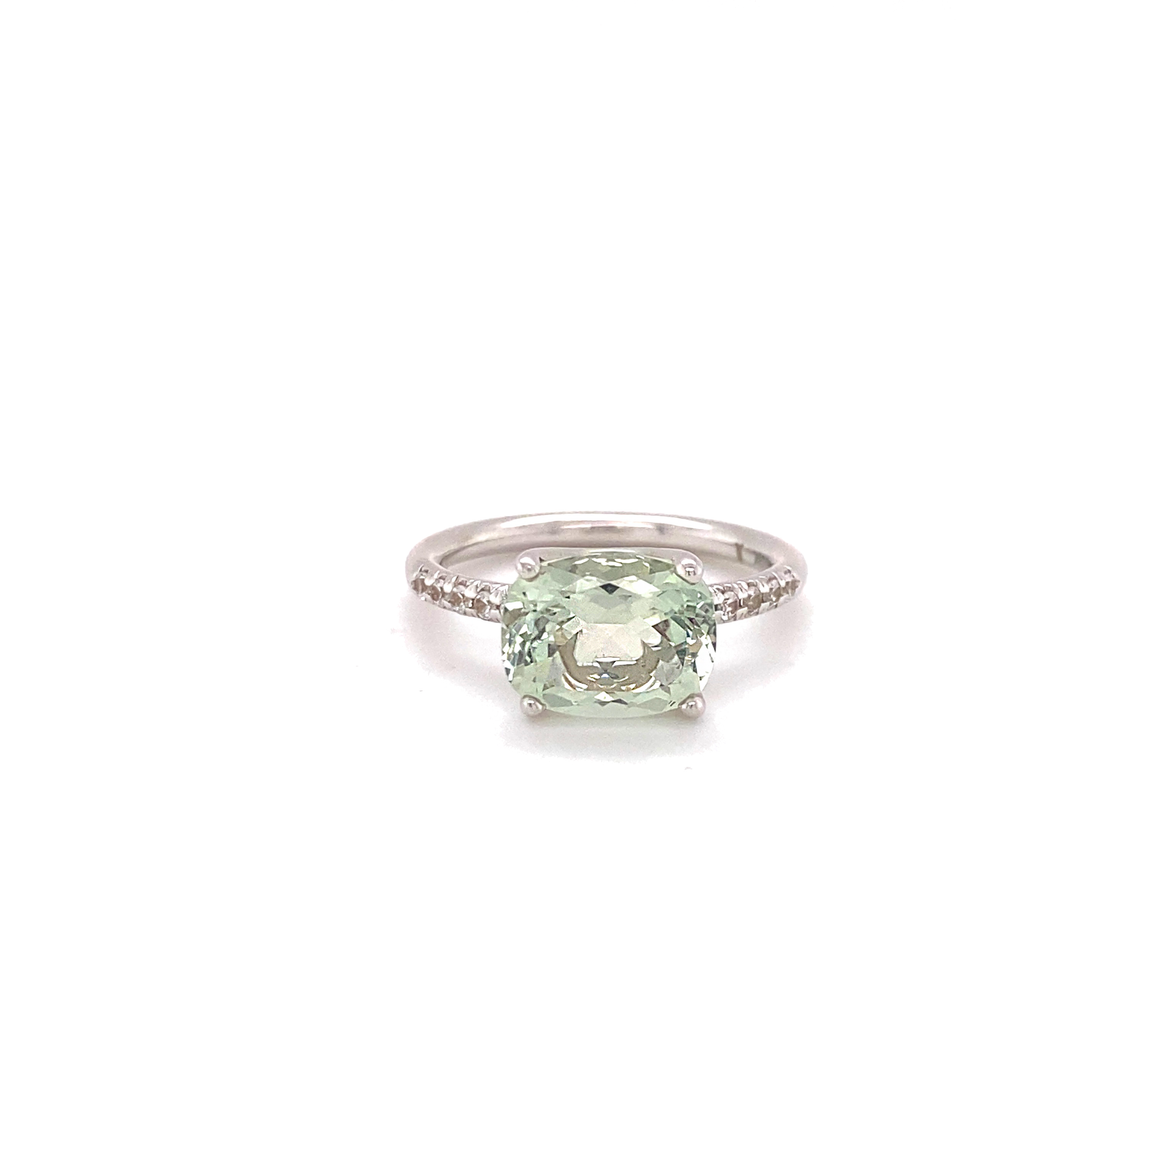 Green Quartz Solitaire Ring - Lesley Ann Jewels